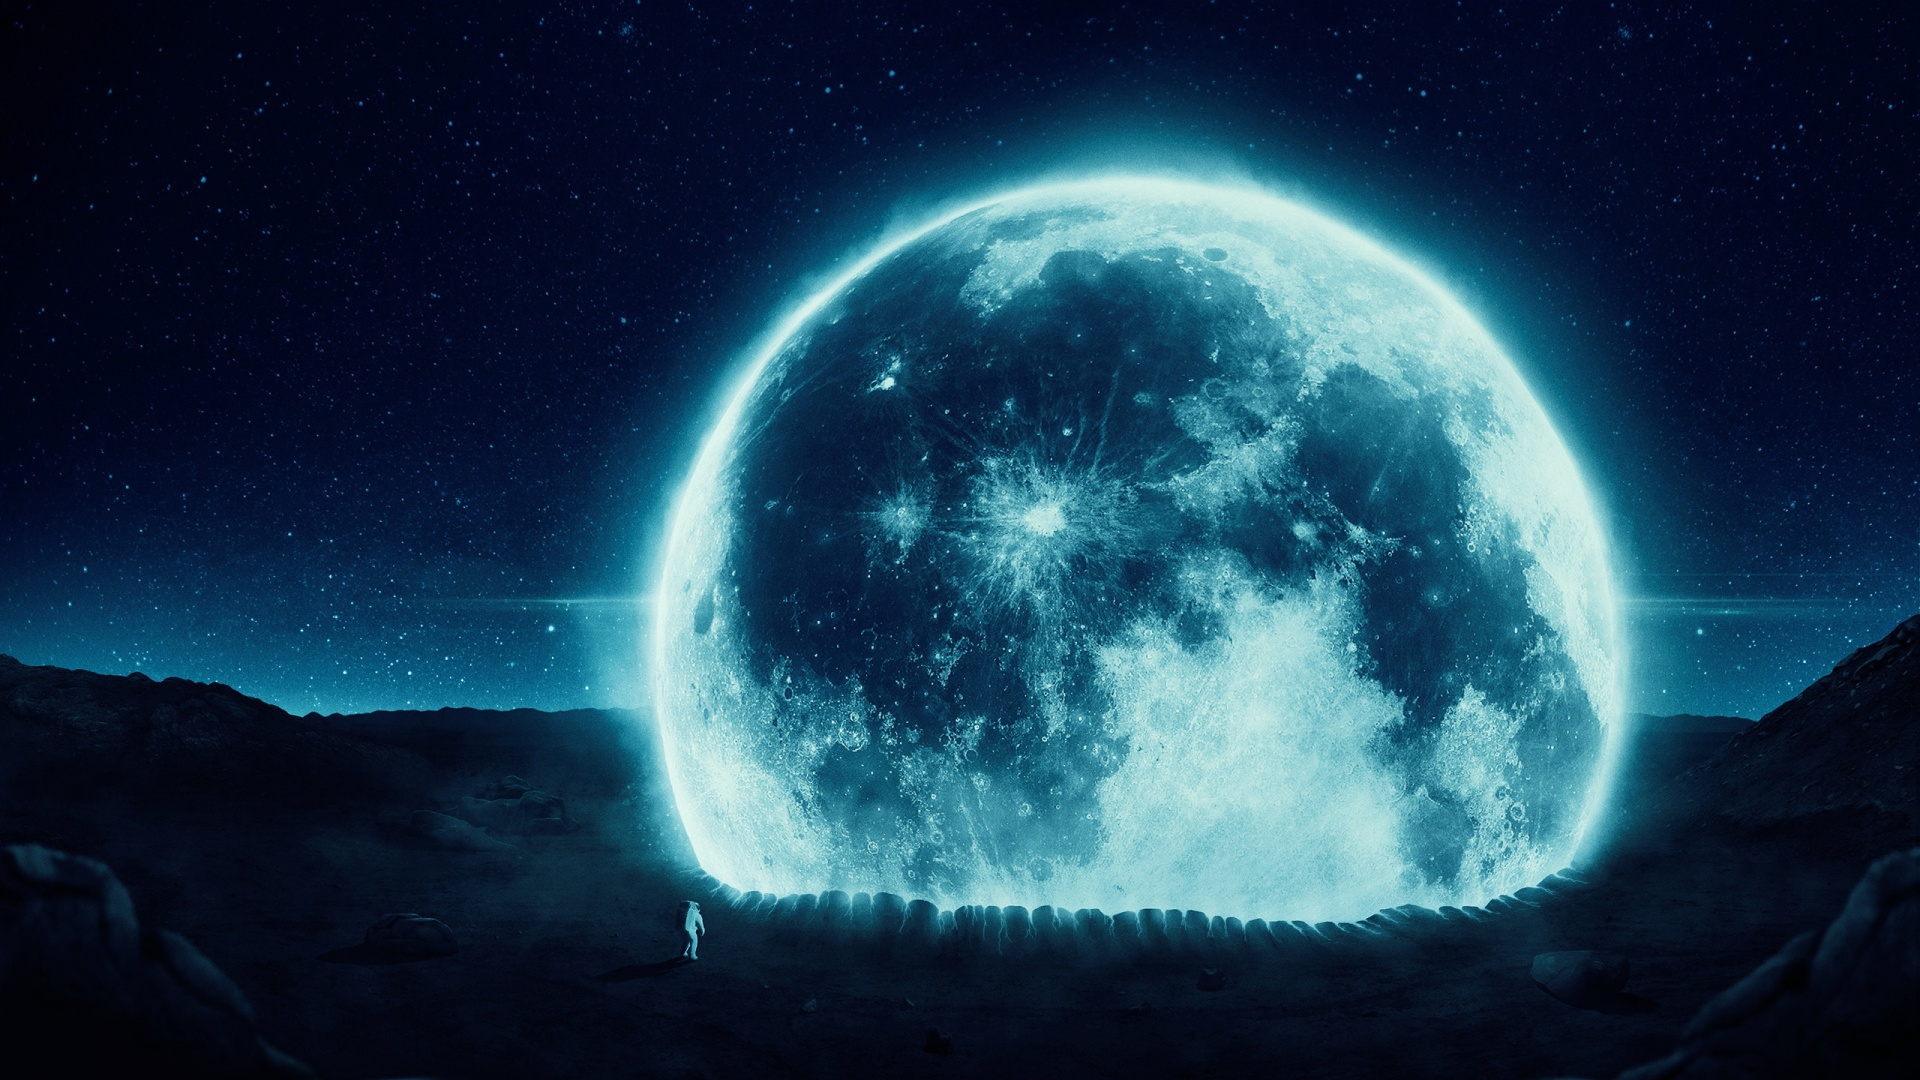 full moon and astronaut